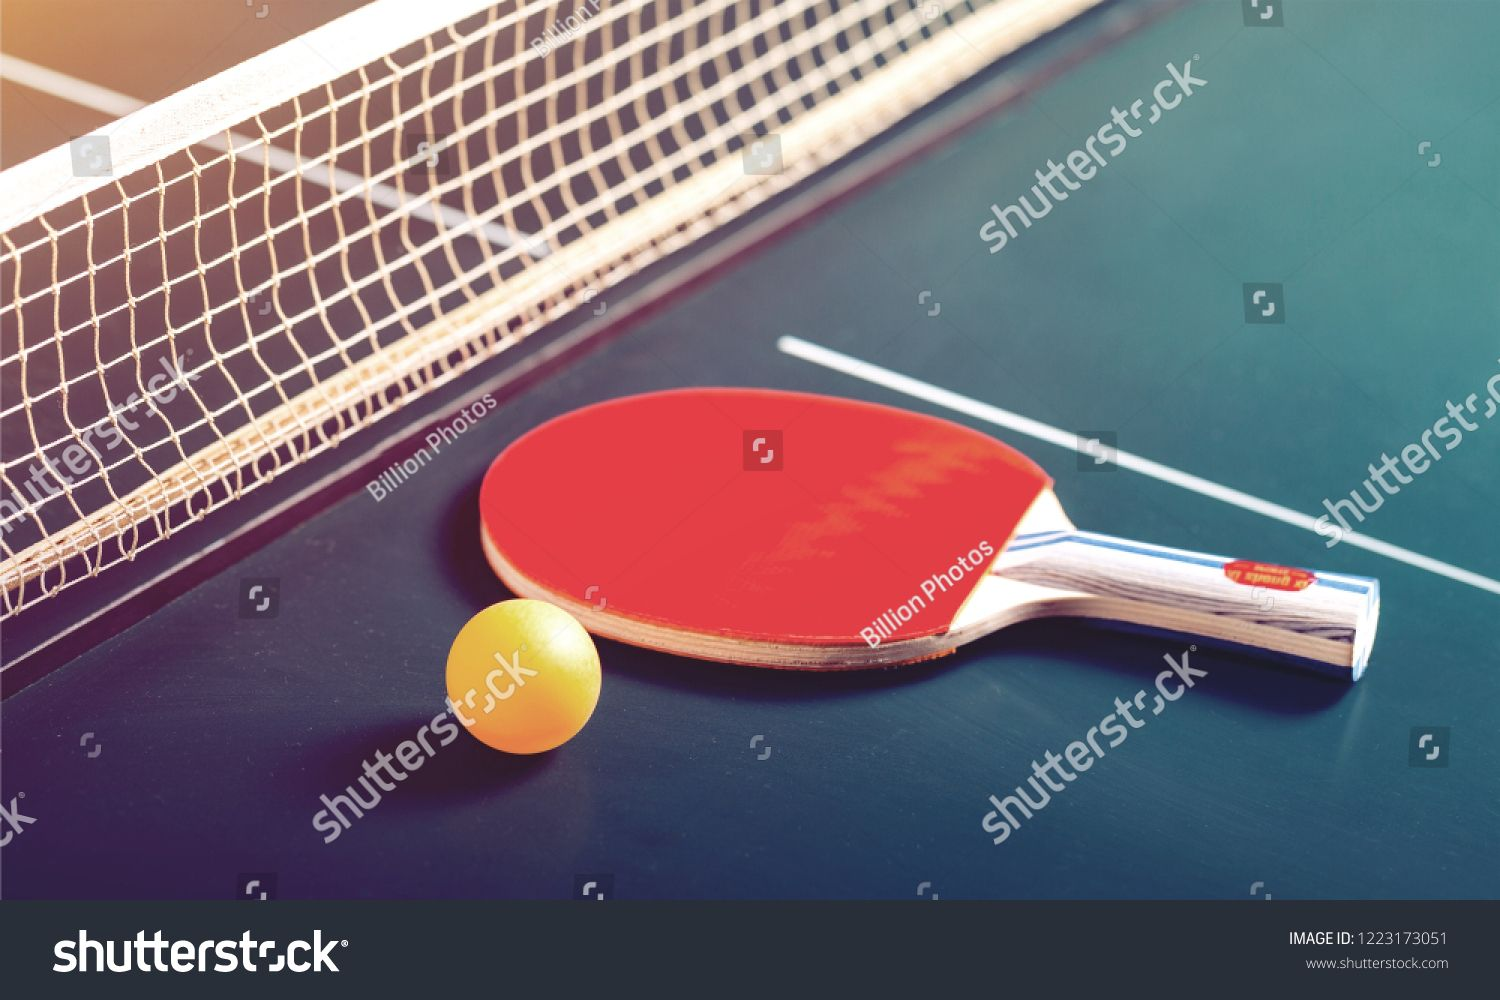 Table Tennis Rackets And Ball On Table Ad Ad Tennis Table Ball Rackets Table Tennis Table Tennis Racket Rackets